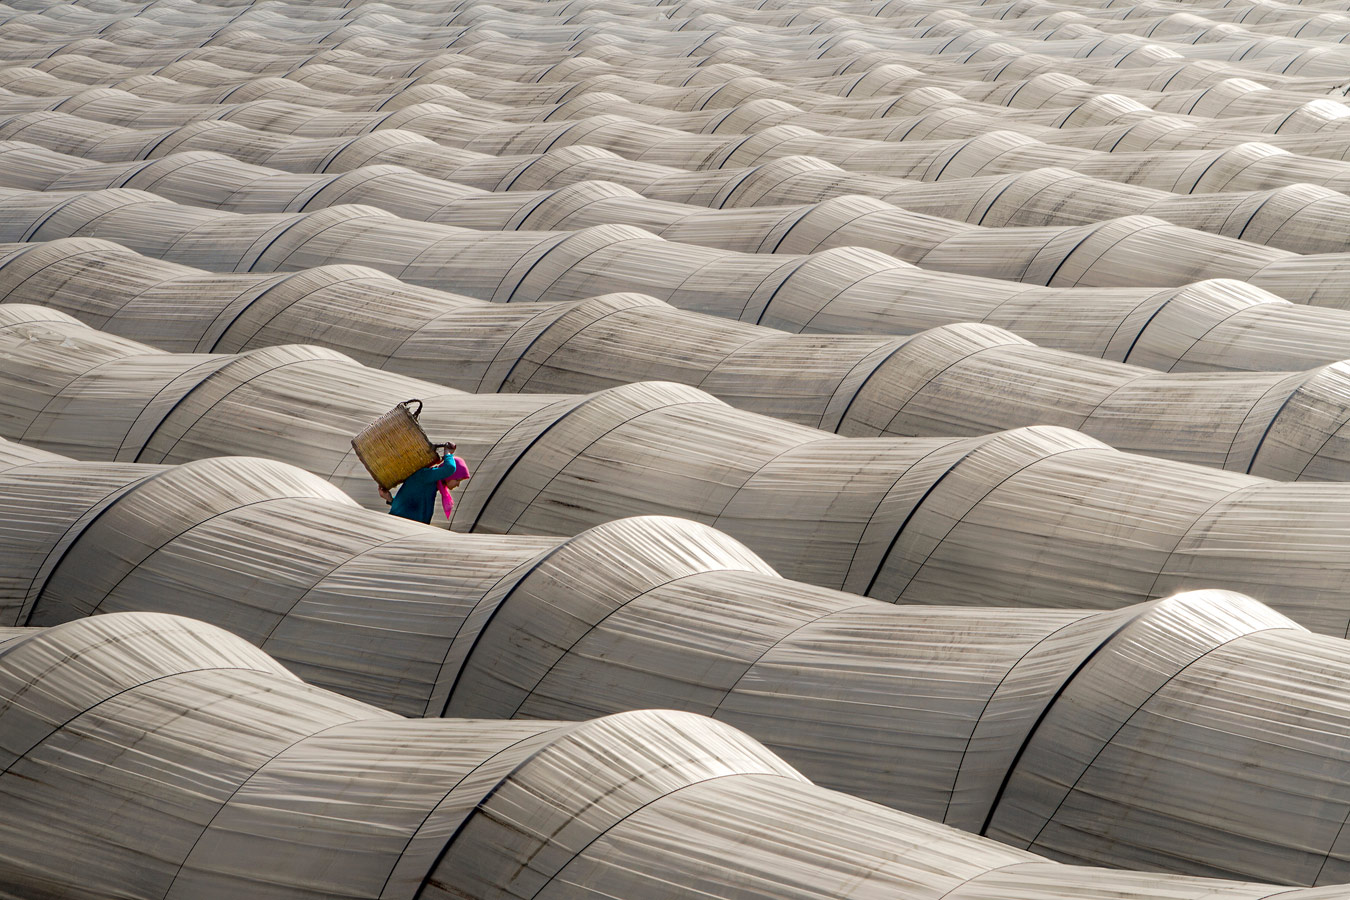 Untitled, © Leyla Emektar, Travel the World Category Expert Winner, CEPIC Stock Photography Awards